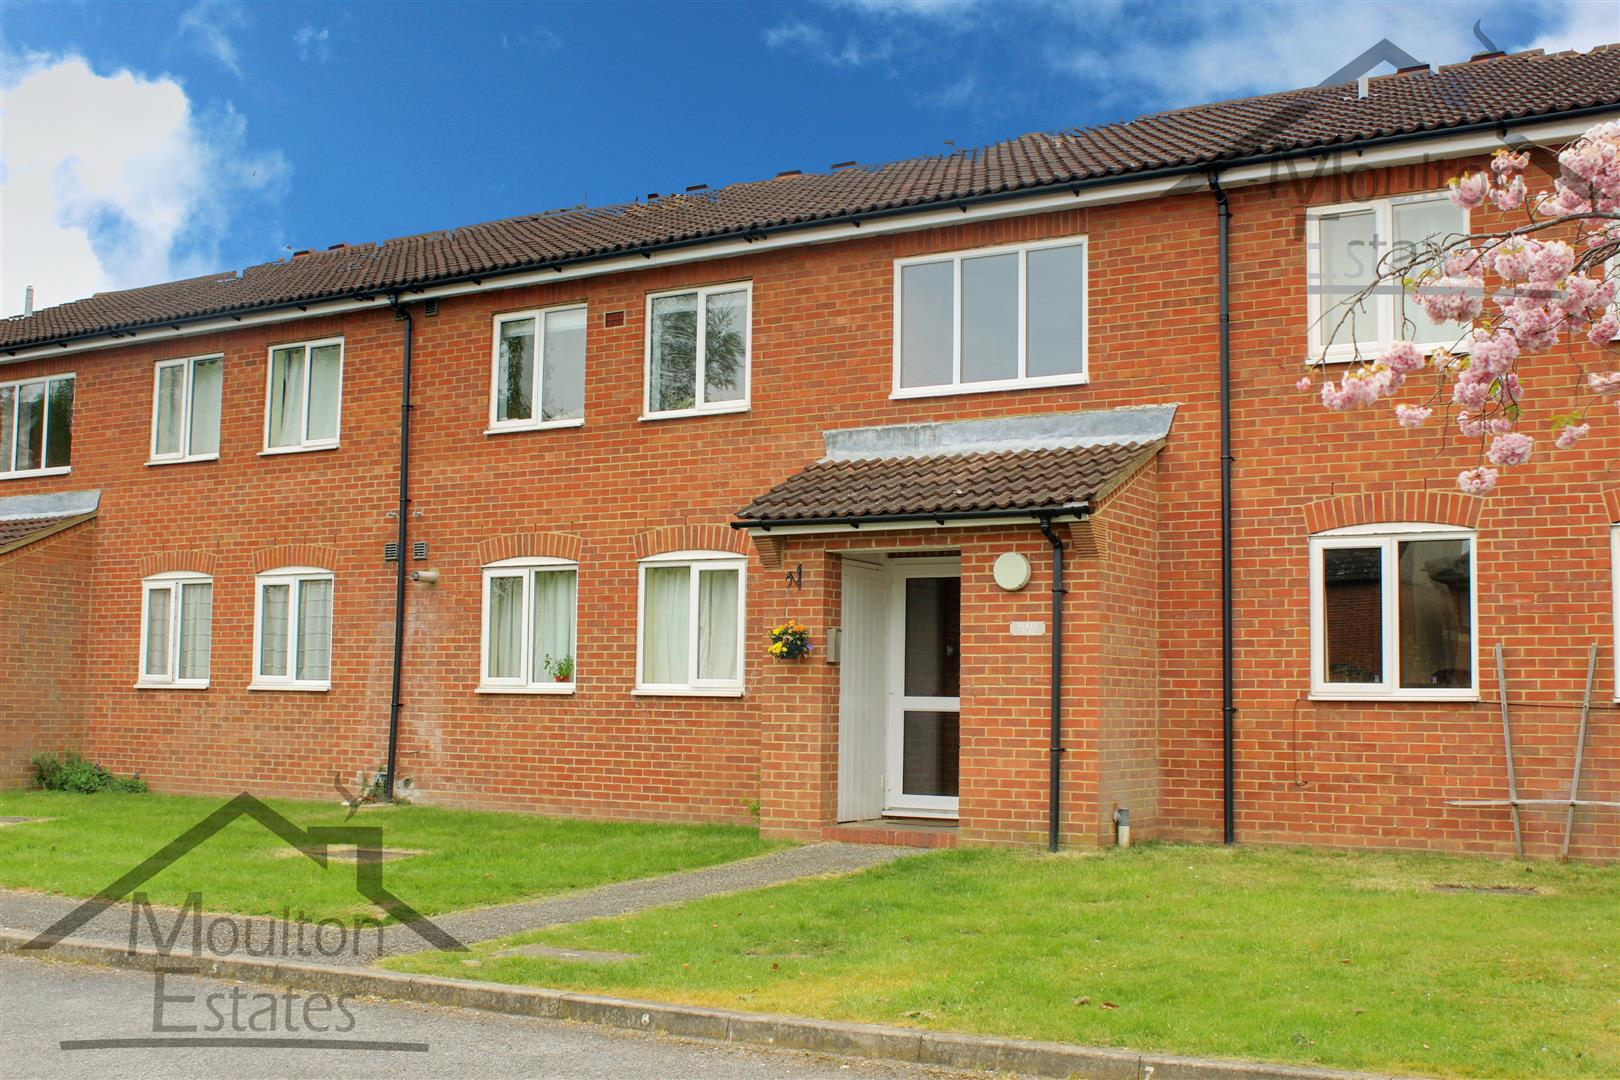 Alban Court, Burleigh Road, St. Albans – Sold